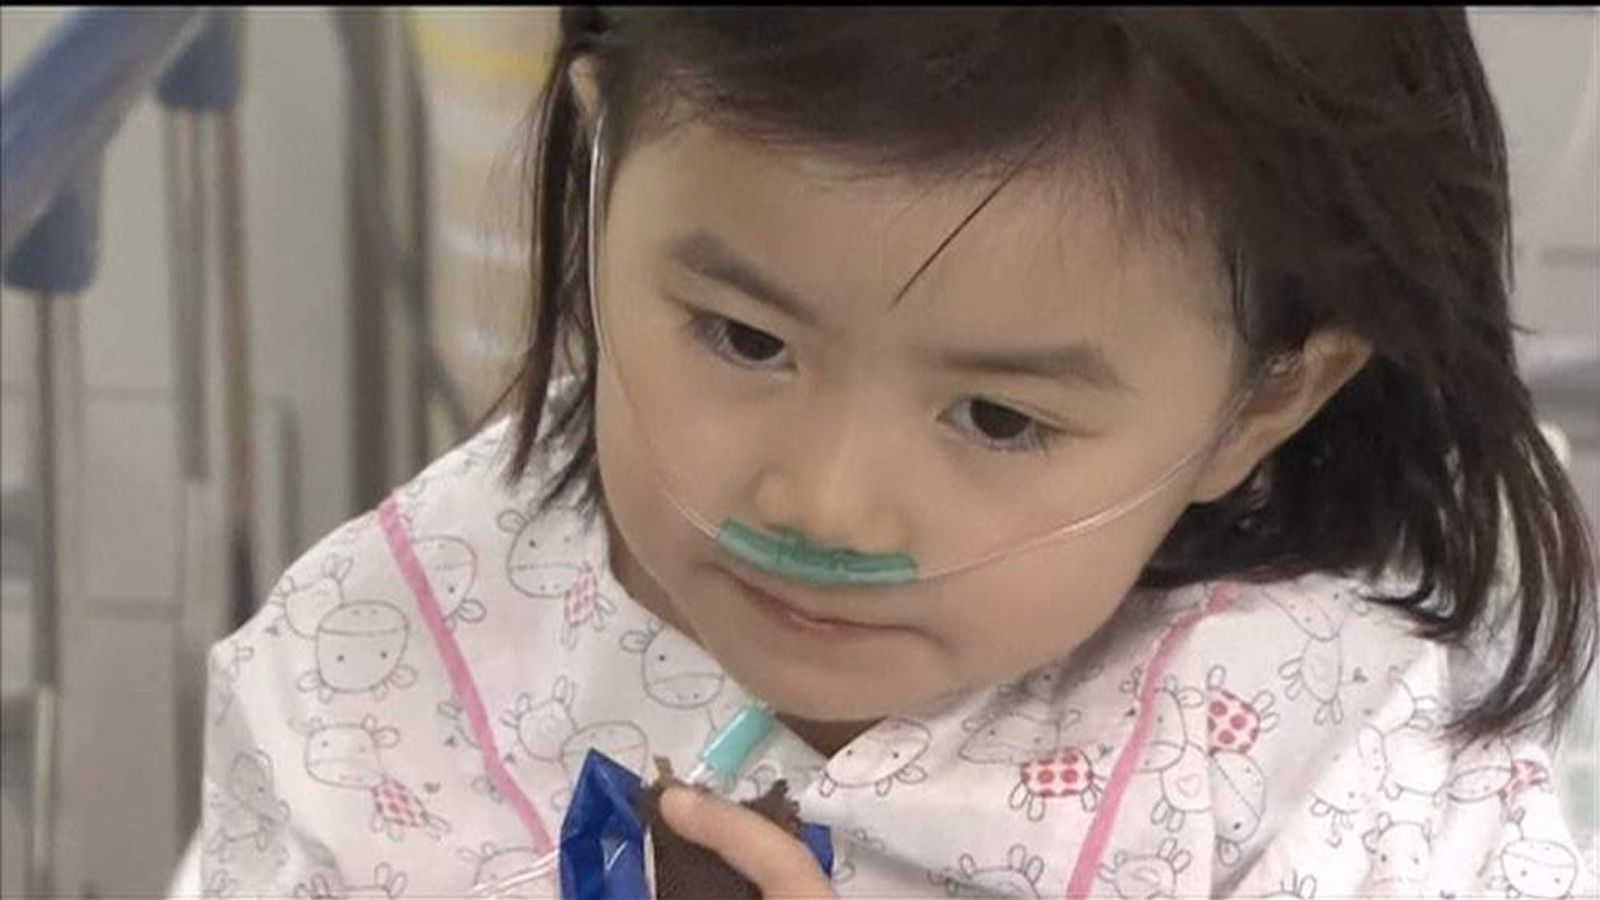 A six-year-old girl is among the survivors of the South Korean ferry disaster - but her parents are still missing.